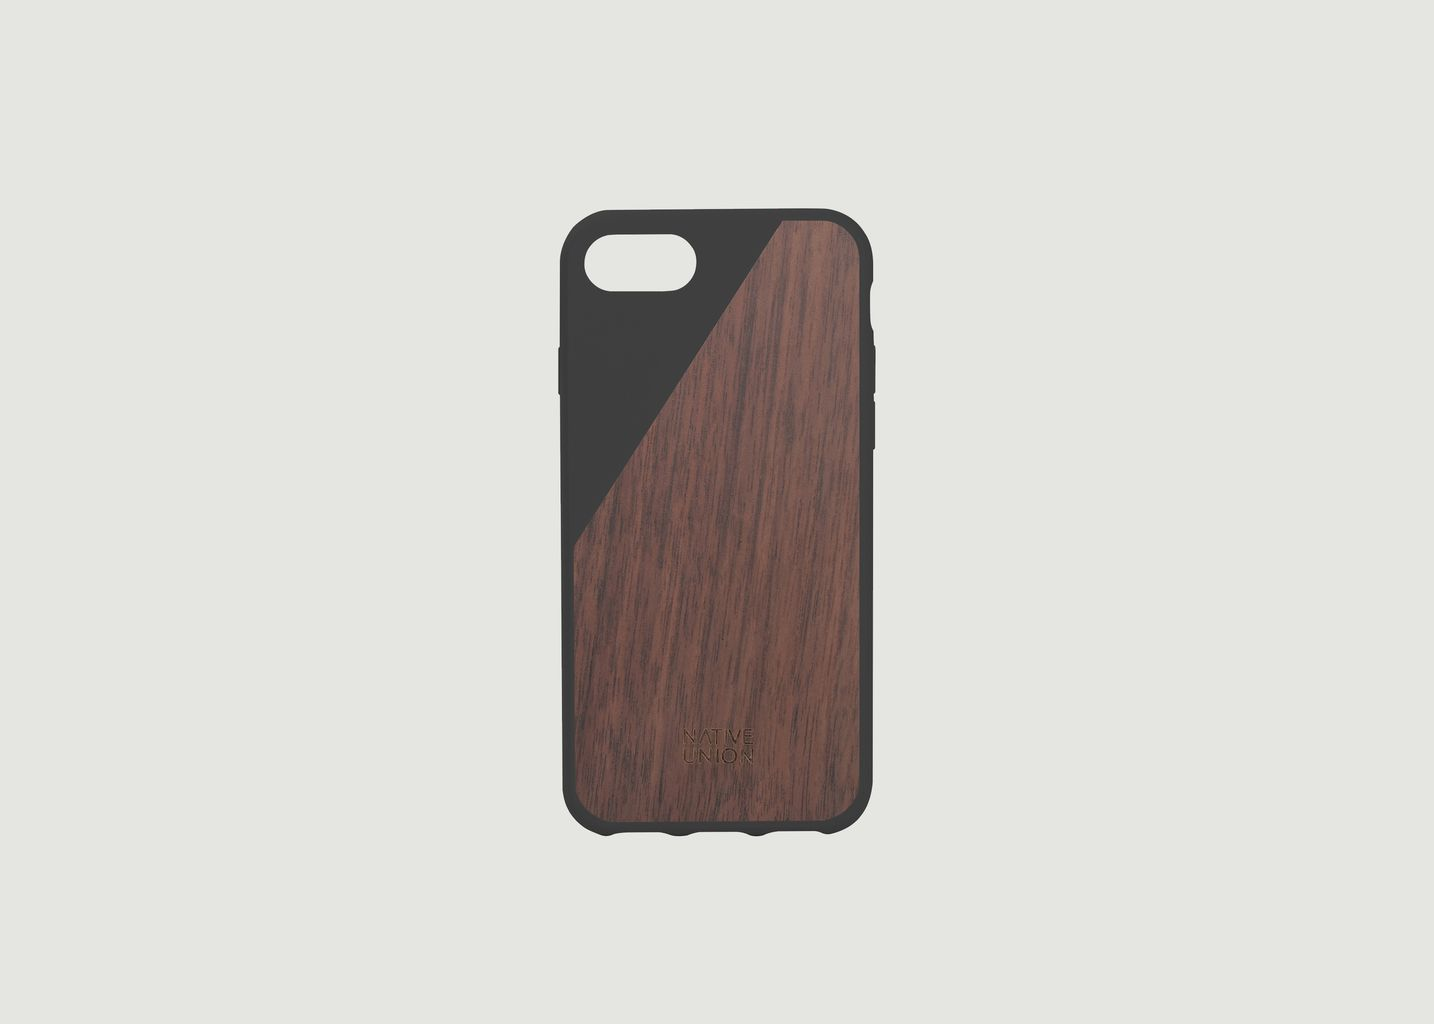 CLIC WOODEN -iPHONE 7/8 CASE - Native Union